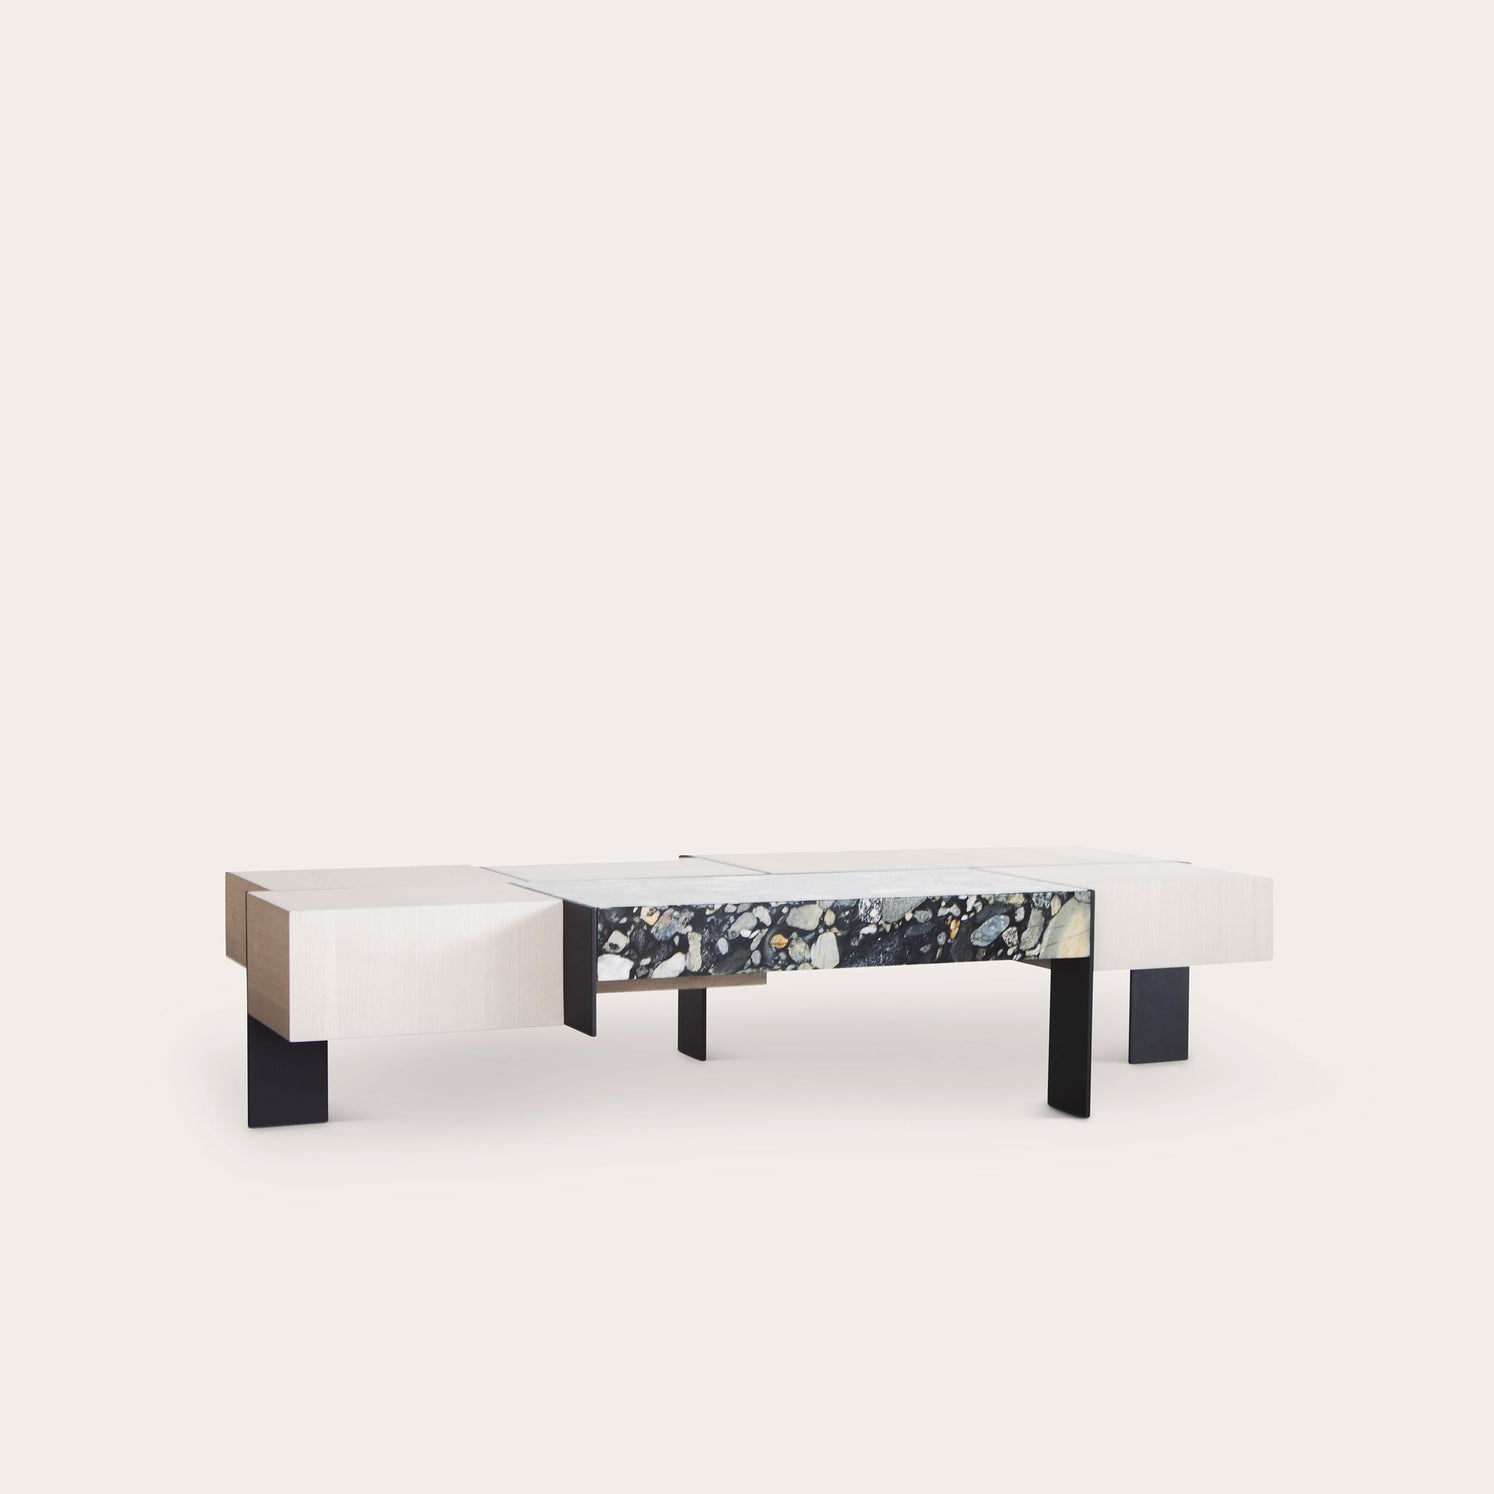 Kitale Coffee Table coffee tables Xavier Dohr Designer Furniture Sku: 416-230-10308